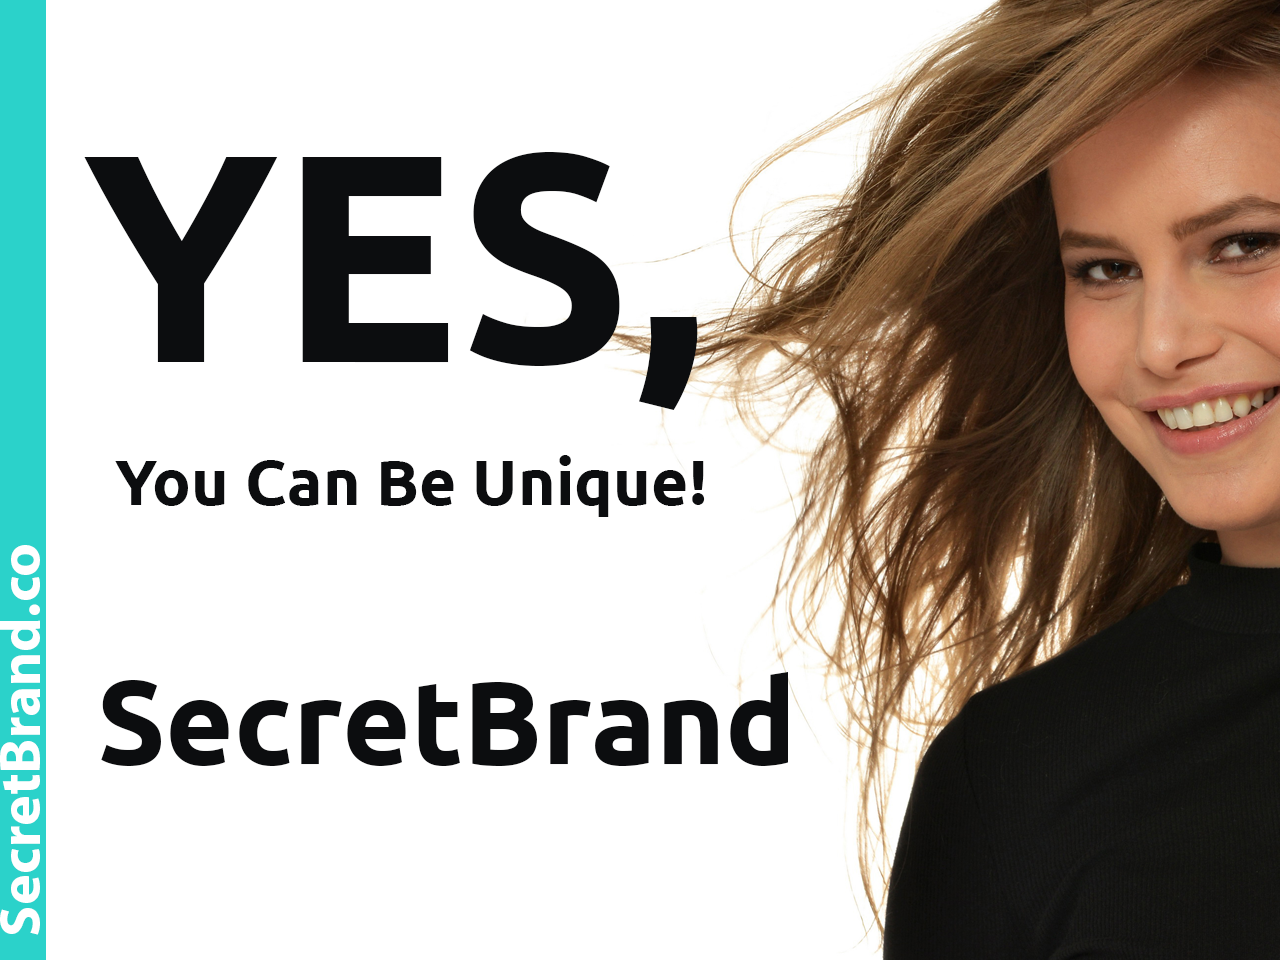 Secretbrand* a Luxury Fashion Startup Will Soon Launch their Indiegogo Campaign